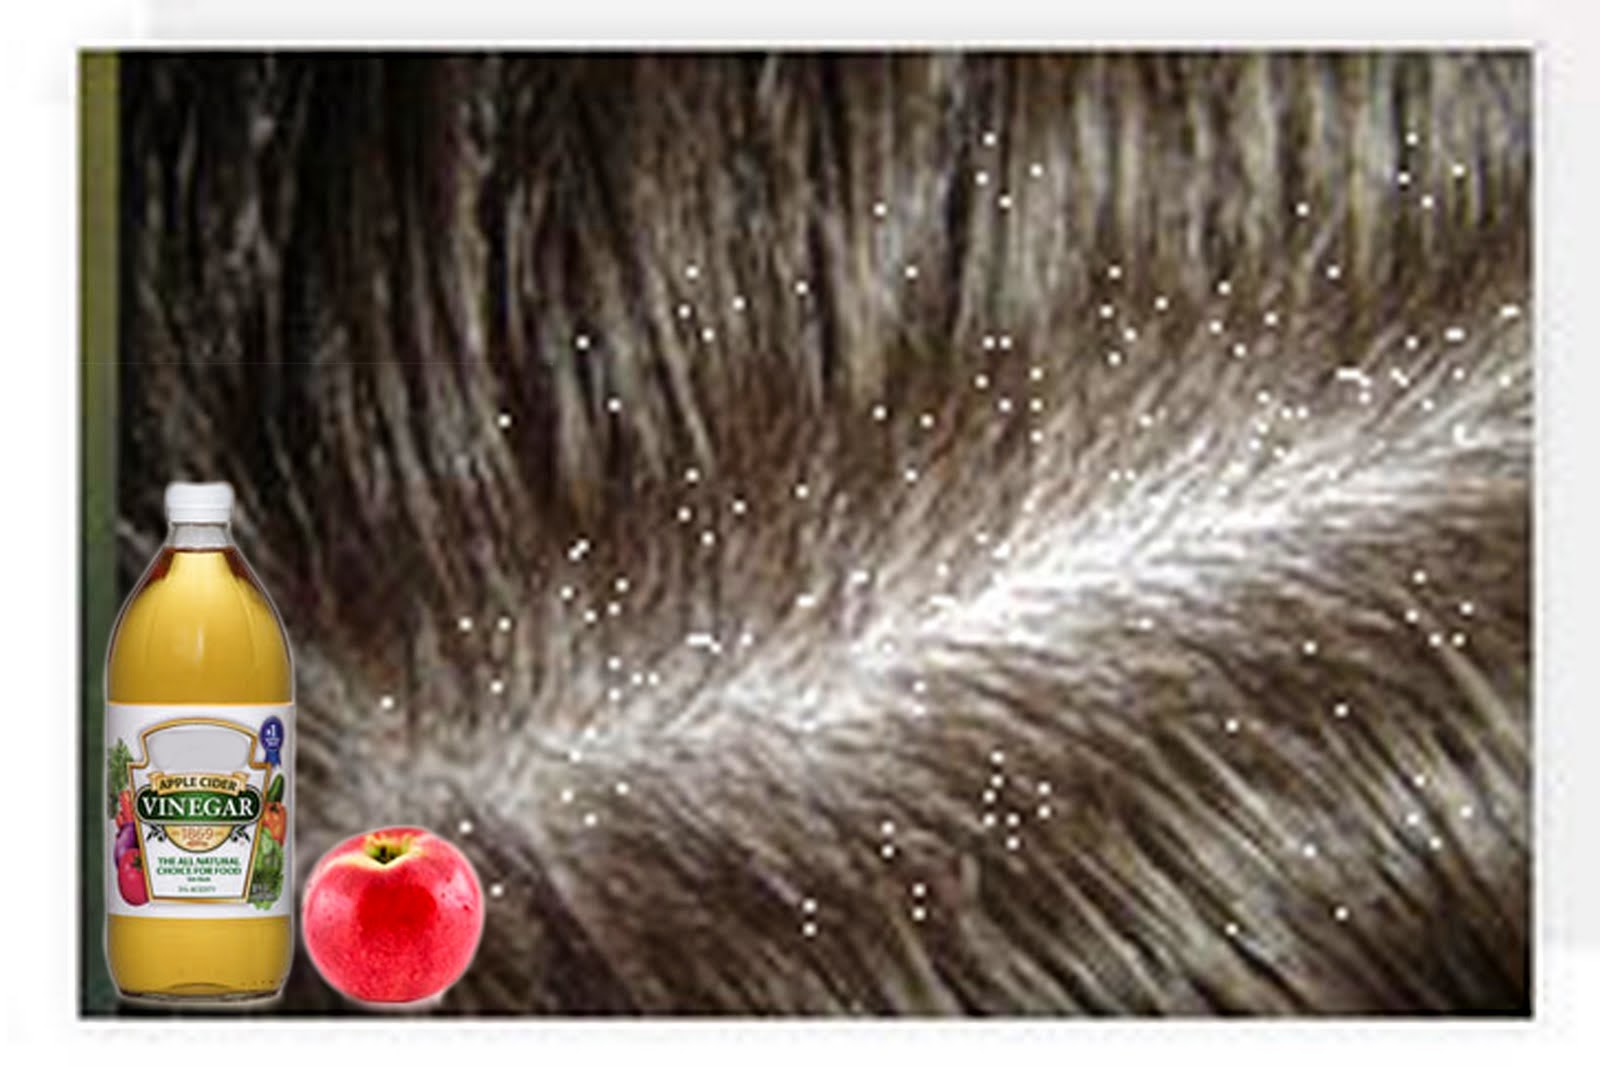 Causes remove dandruff massage dead cells home remedies hair combat the dryness Hair care Reasons Control Reduce